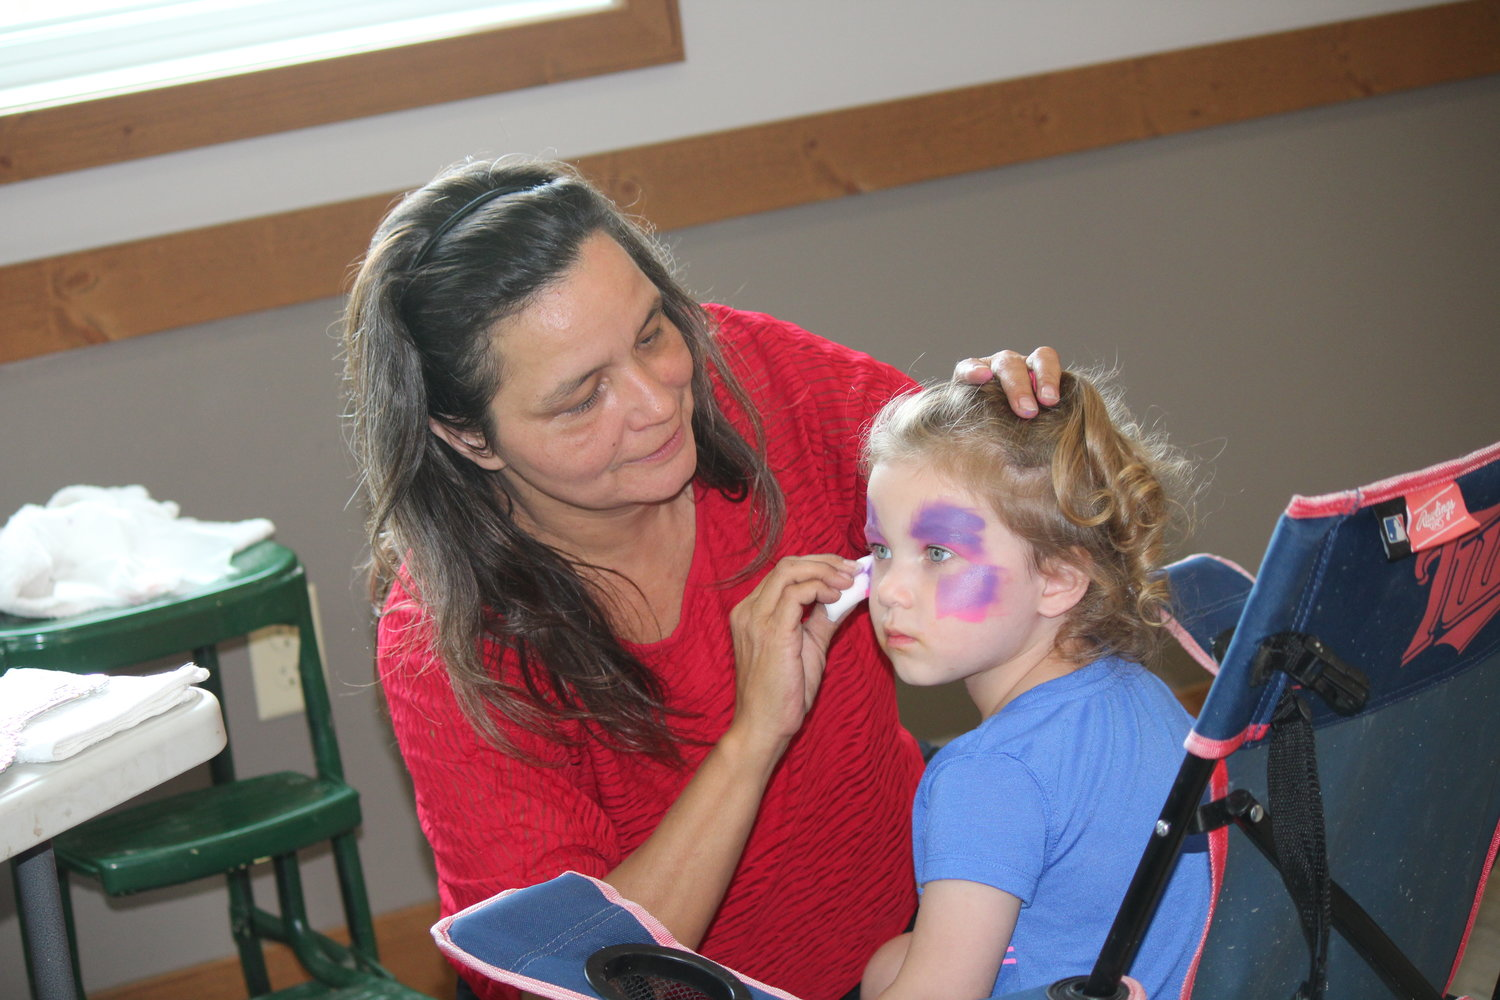 Tracey Robinson paints the face of Maren Foss, 2, of Cook inside the community center.